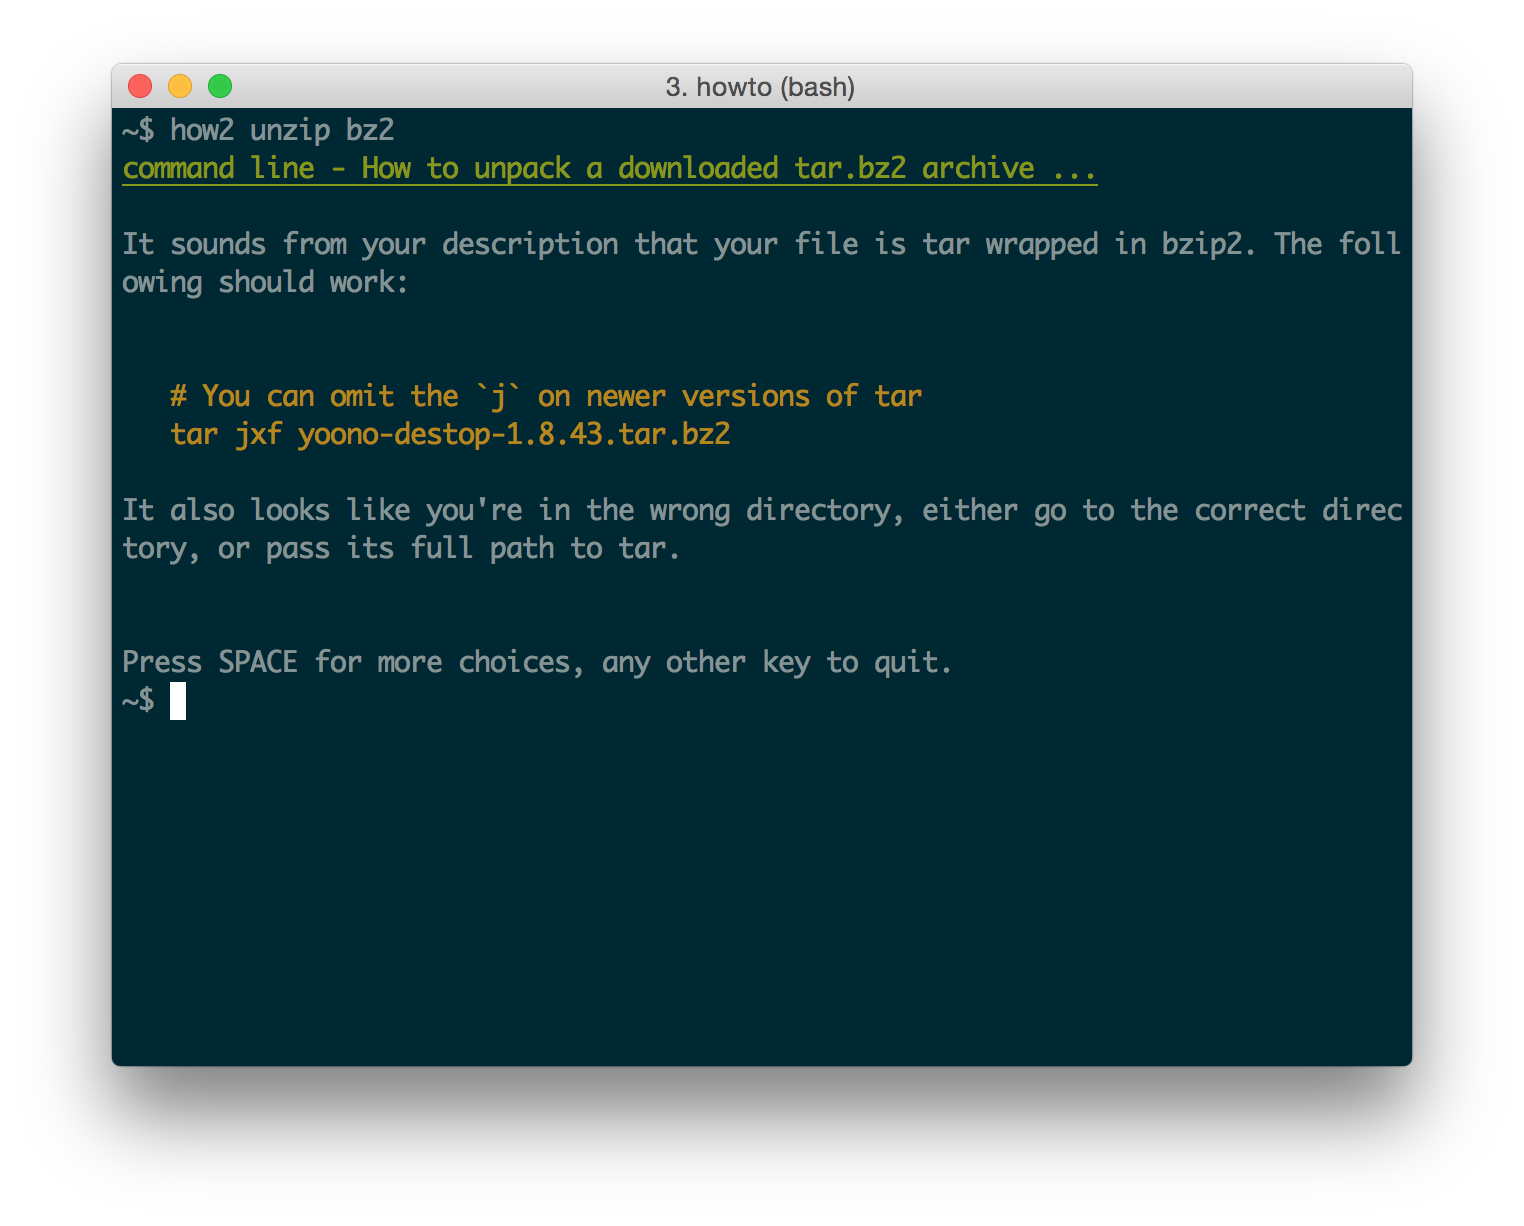 how2: stackoverflow from the terminal